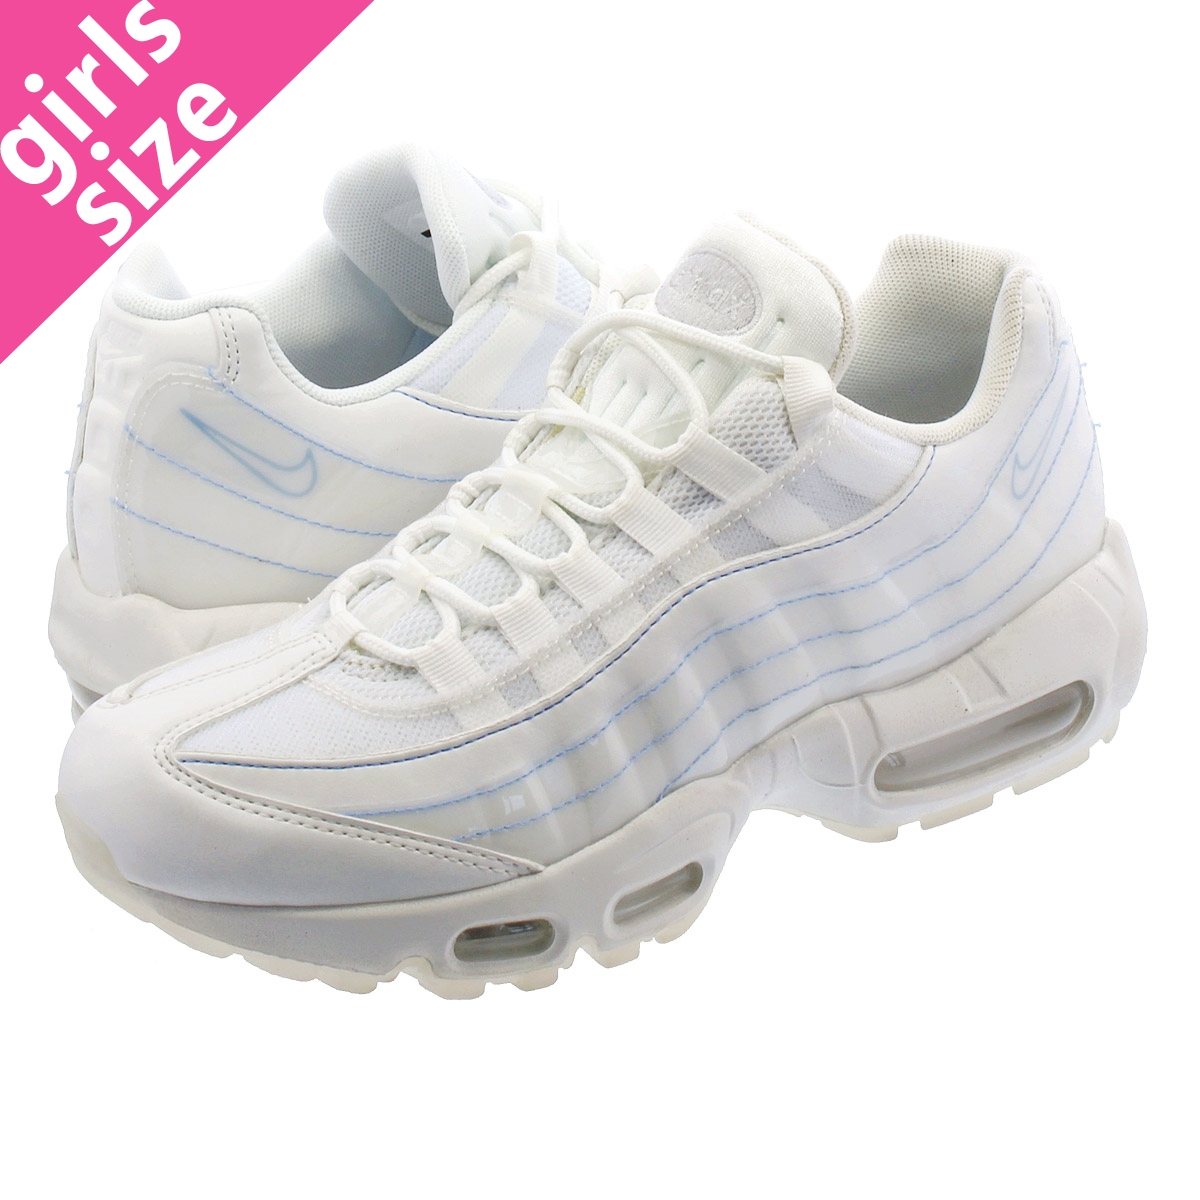 Nike Air Max 95 Trainers In All White from category Women